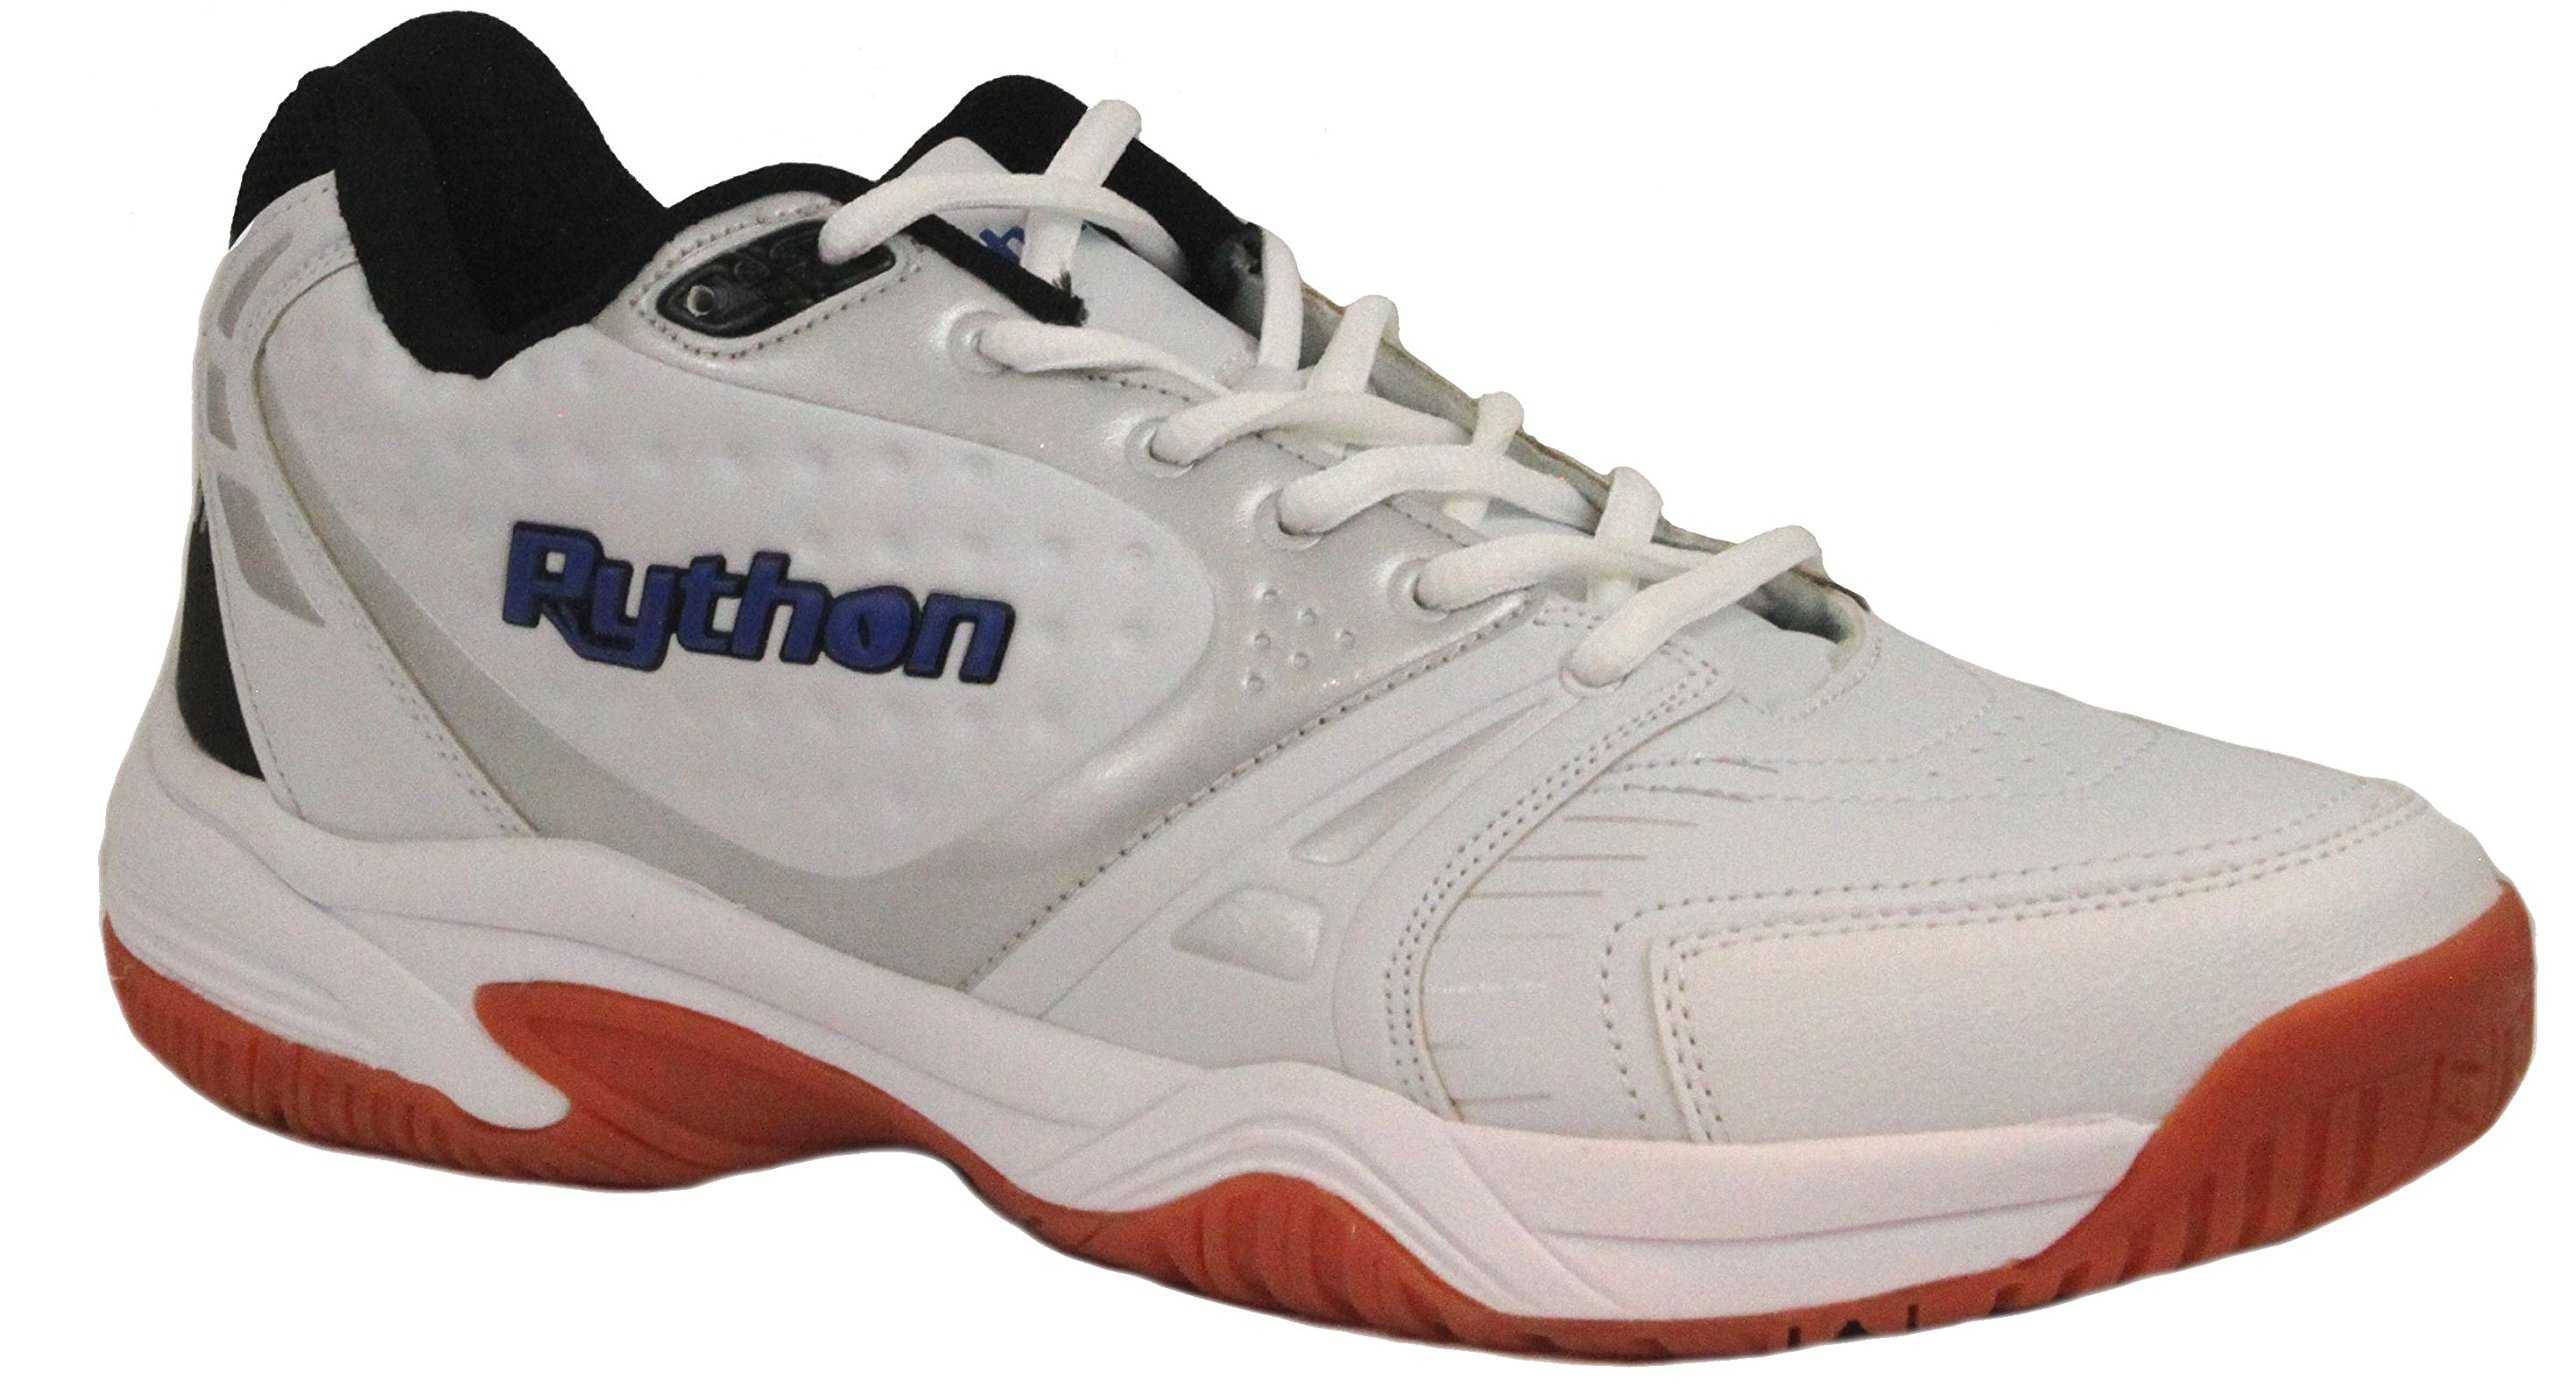 Python Men's Deluxe Indoor (Mid) Racquetball Shoe (Non-Marking) 6.0 (D) US White